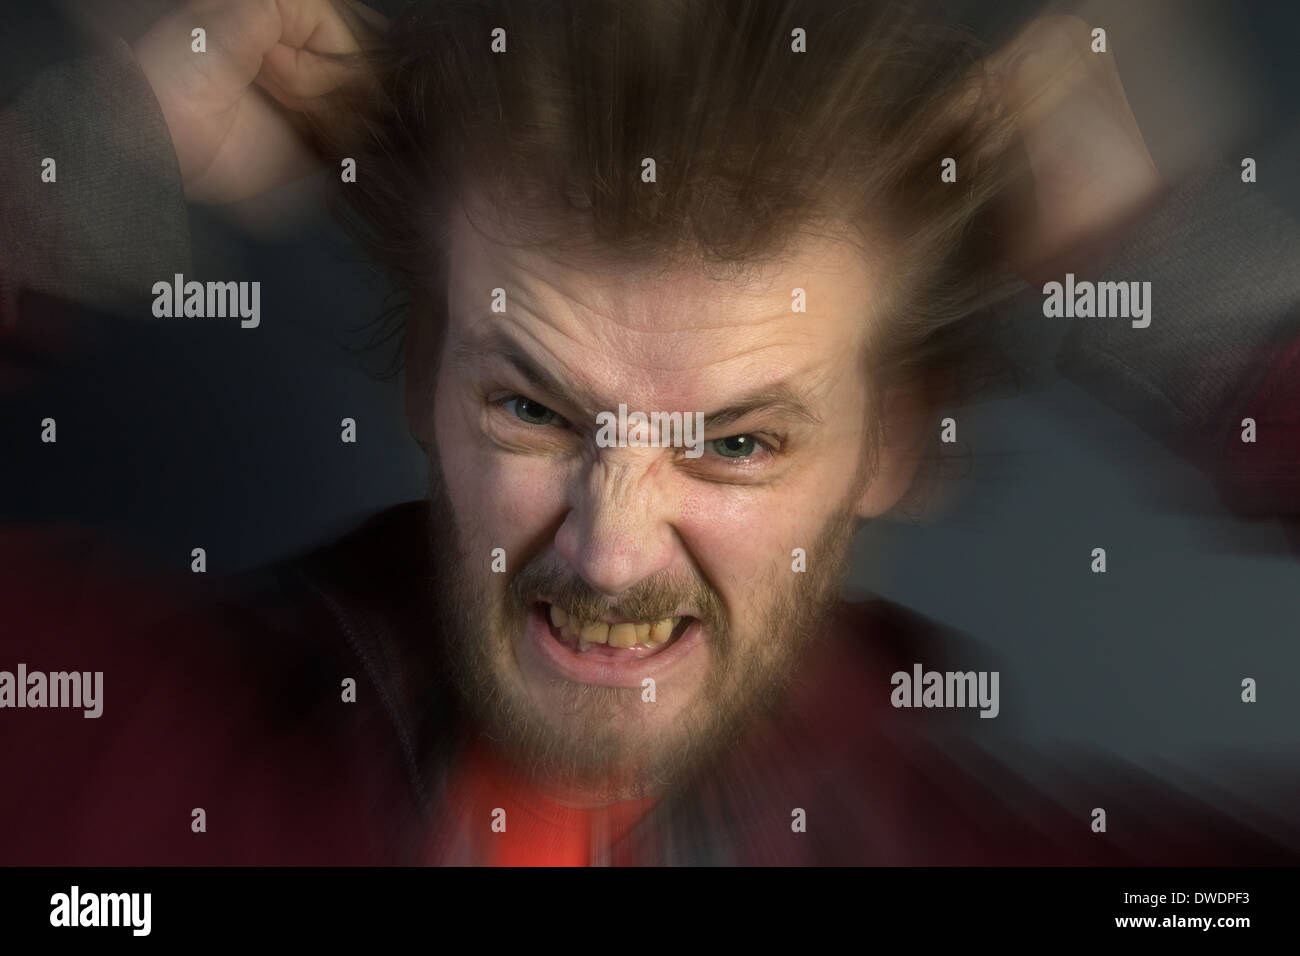 An angry man with a bad temper tearing his hair out. - Stock Image